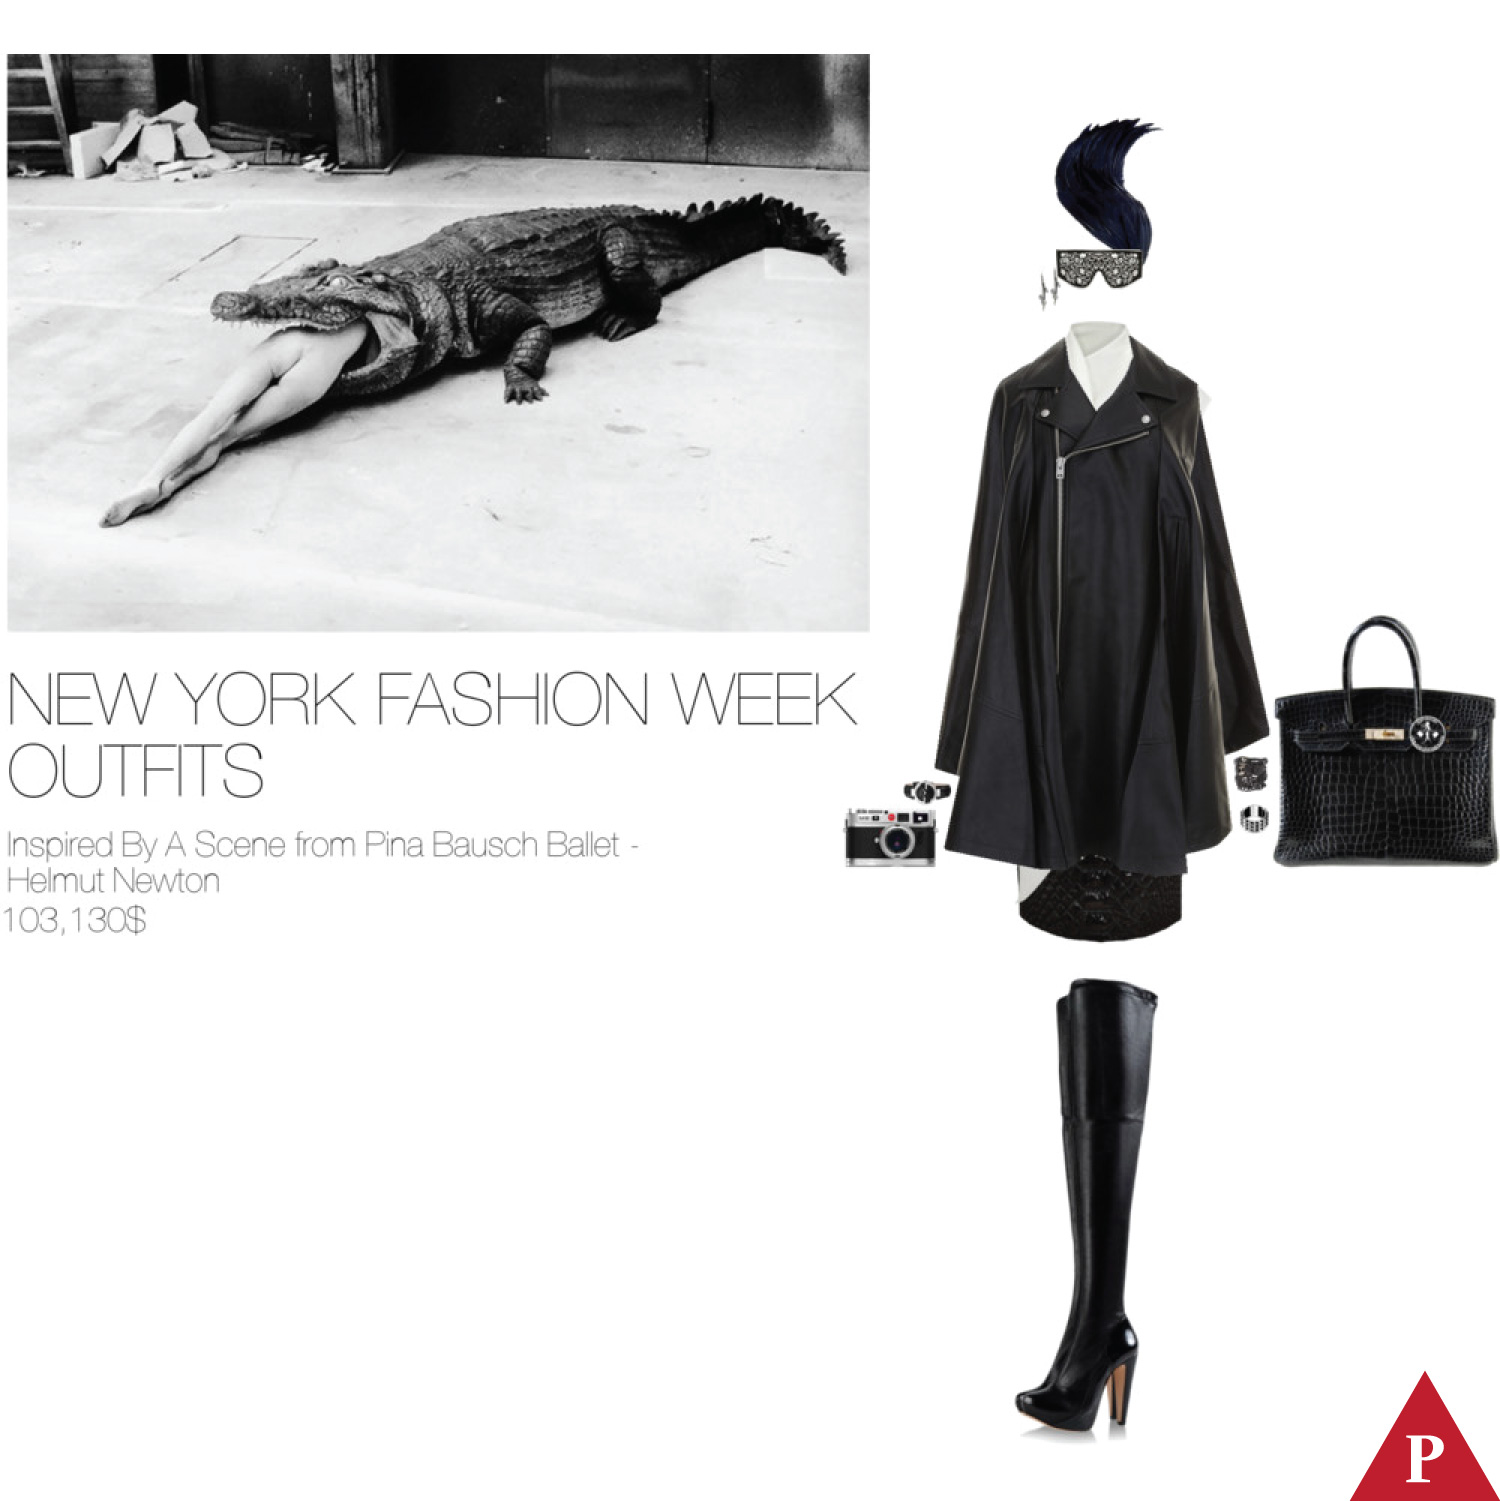 103,130$ New York Fashion Week Outfits Inspired By A Scene from Pina ...